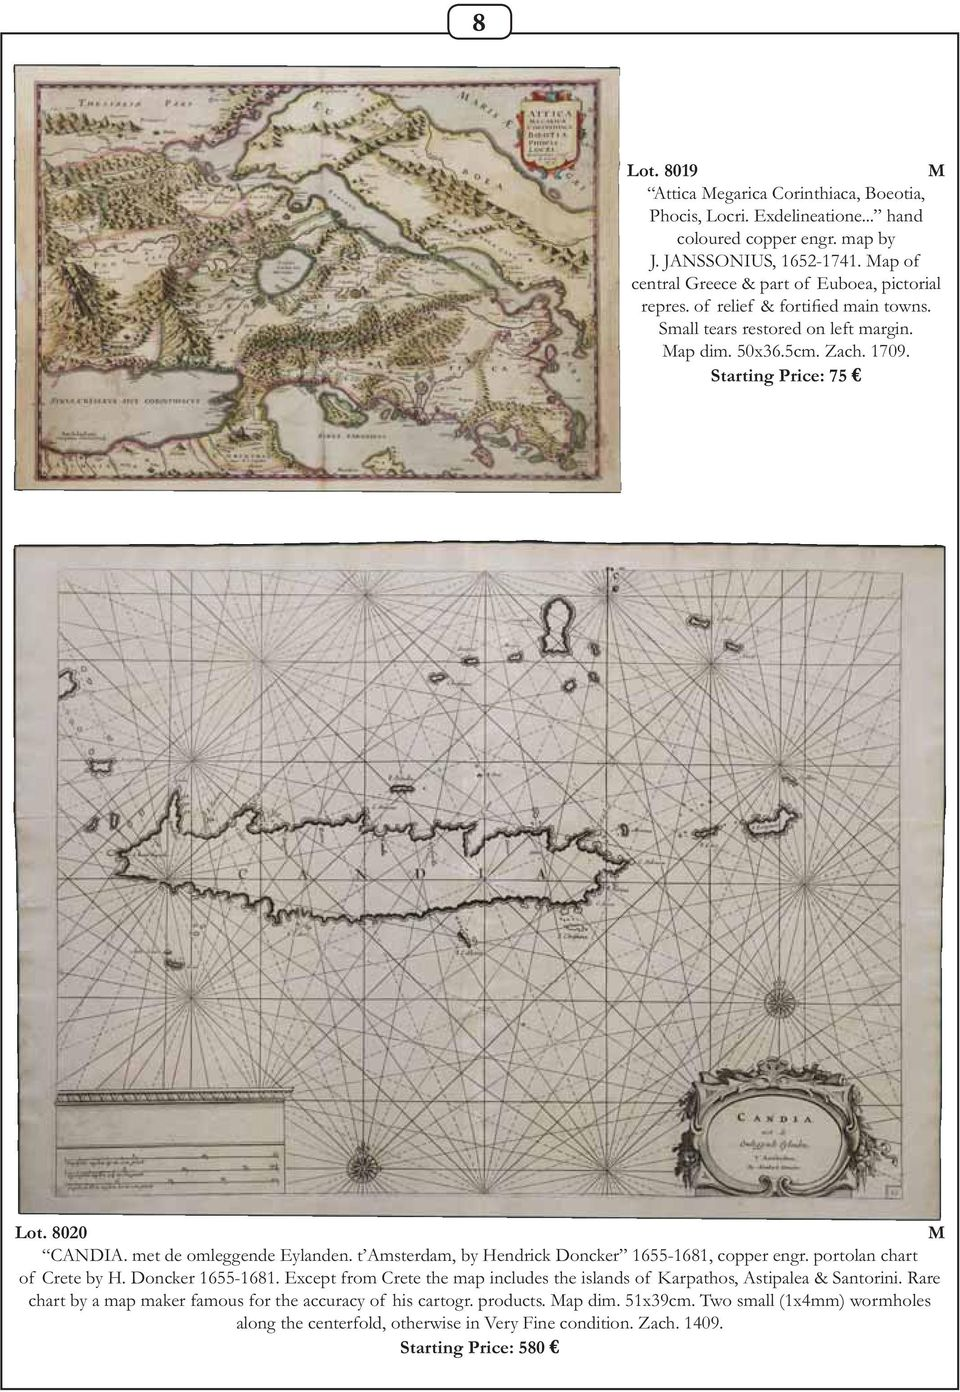 8020 CANDIA. met de omleggende Eylanden. t Amsterdam, by Hendrick Doncker 1655-1681, copper engr. portolan chart of Crete by H. Doncker 1655-1681. Except from Crete the map includes the islands of Karpathos, Astipalea & Santorini.